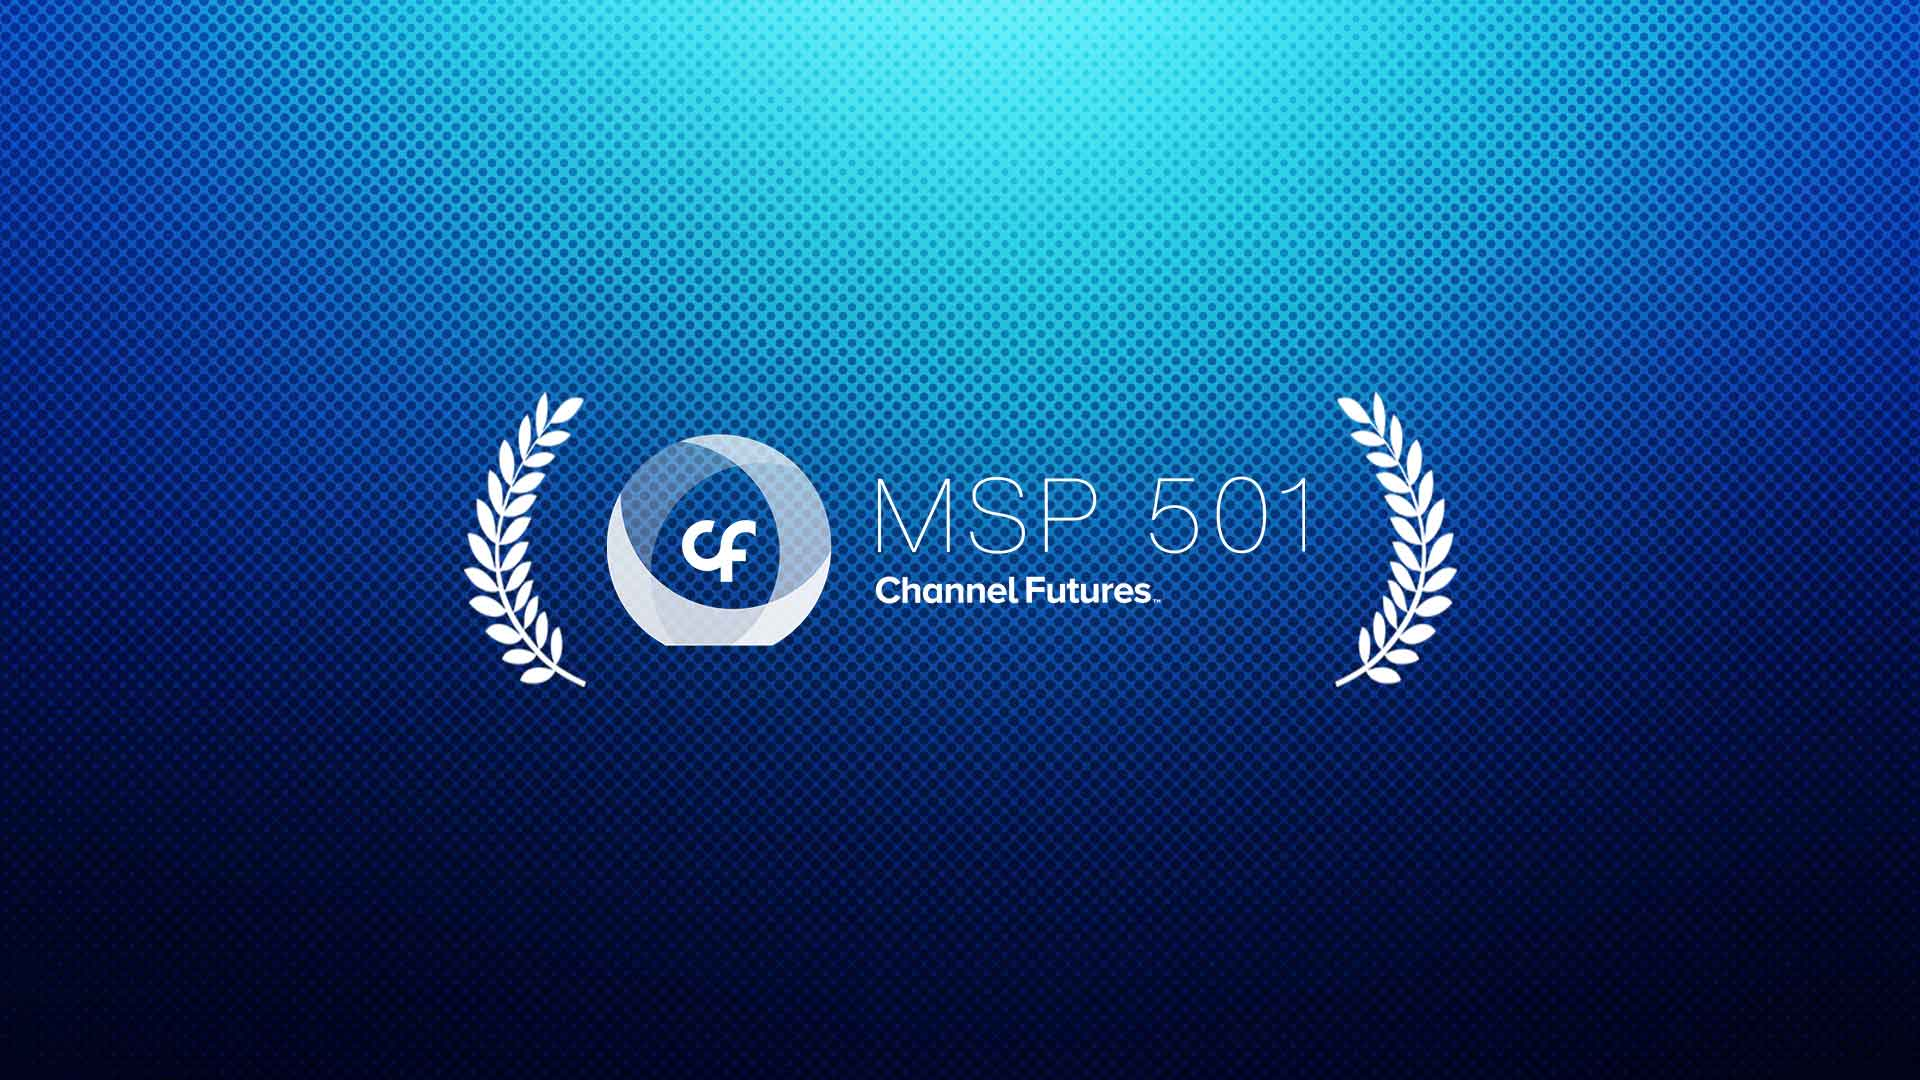 msp-501-endsight-top-managed-services-provider-2